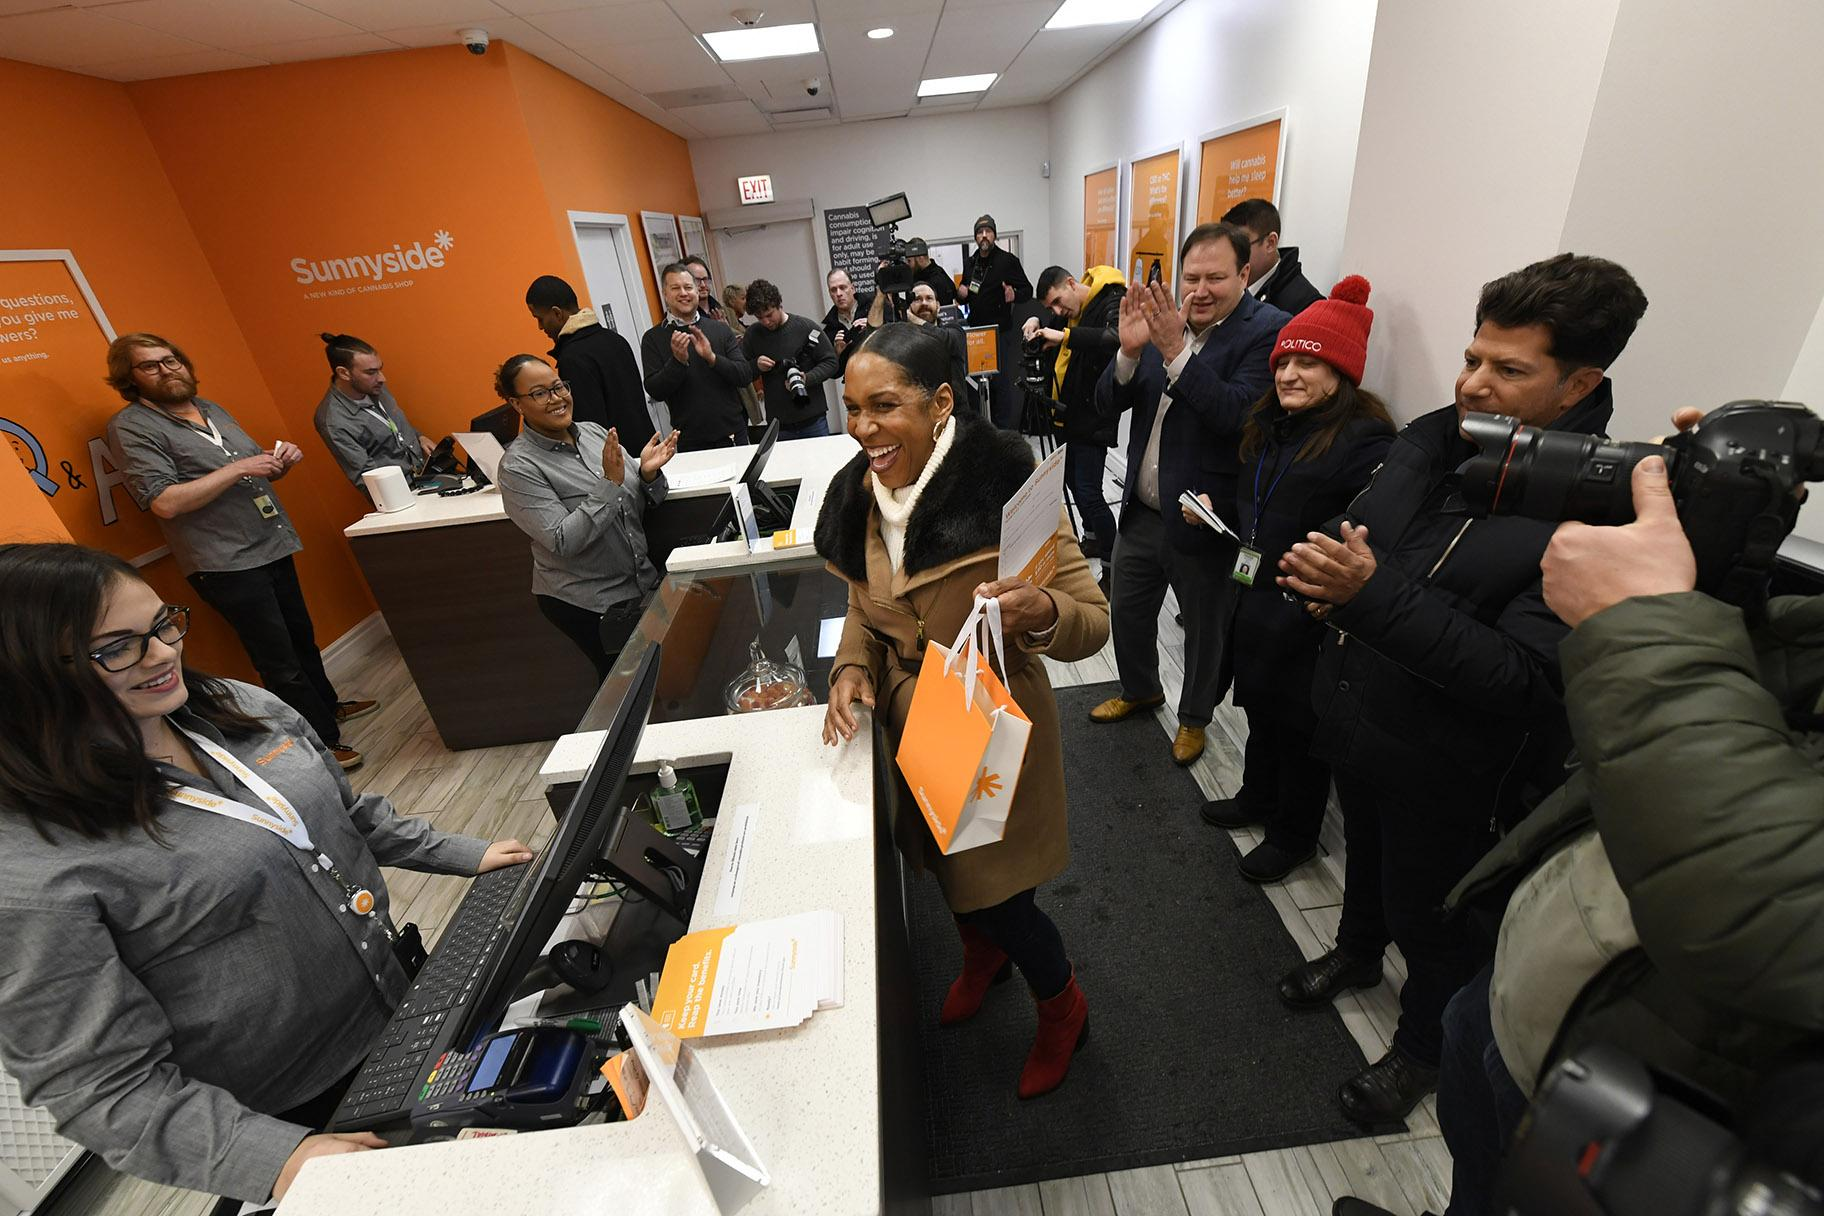 Illinois Lt. Gov. Juliana Stratton reacts after purchasing recreational marijuana at Sunnyside dispensary Wednesday, Jan. 1, 2020, in Chicago. (AP Photo / Paul Beaty)